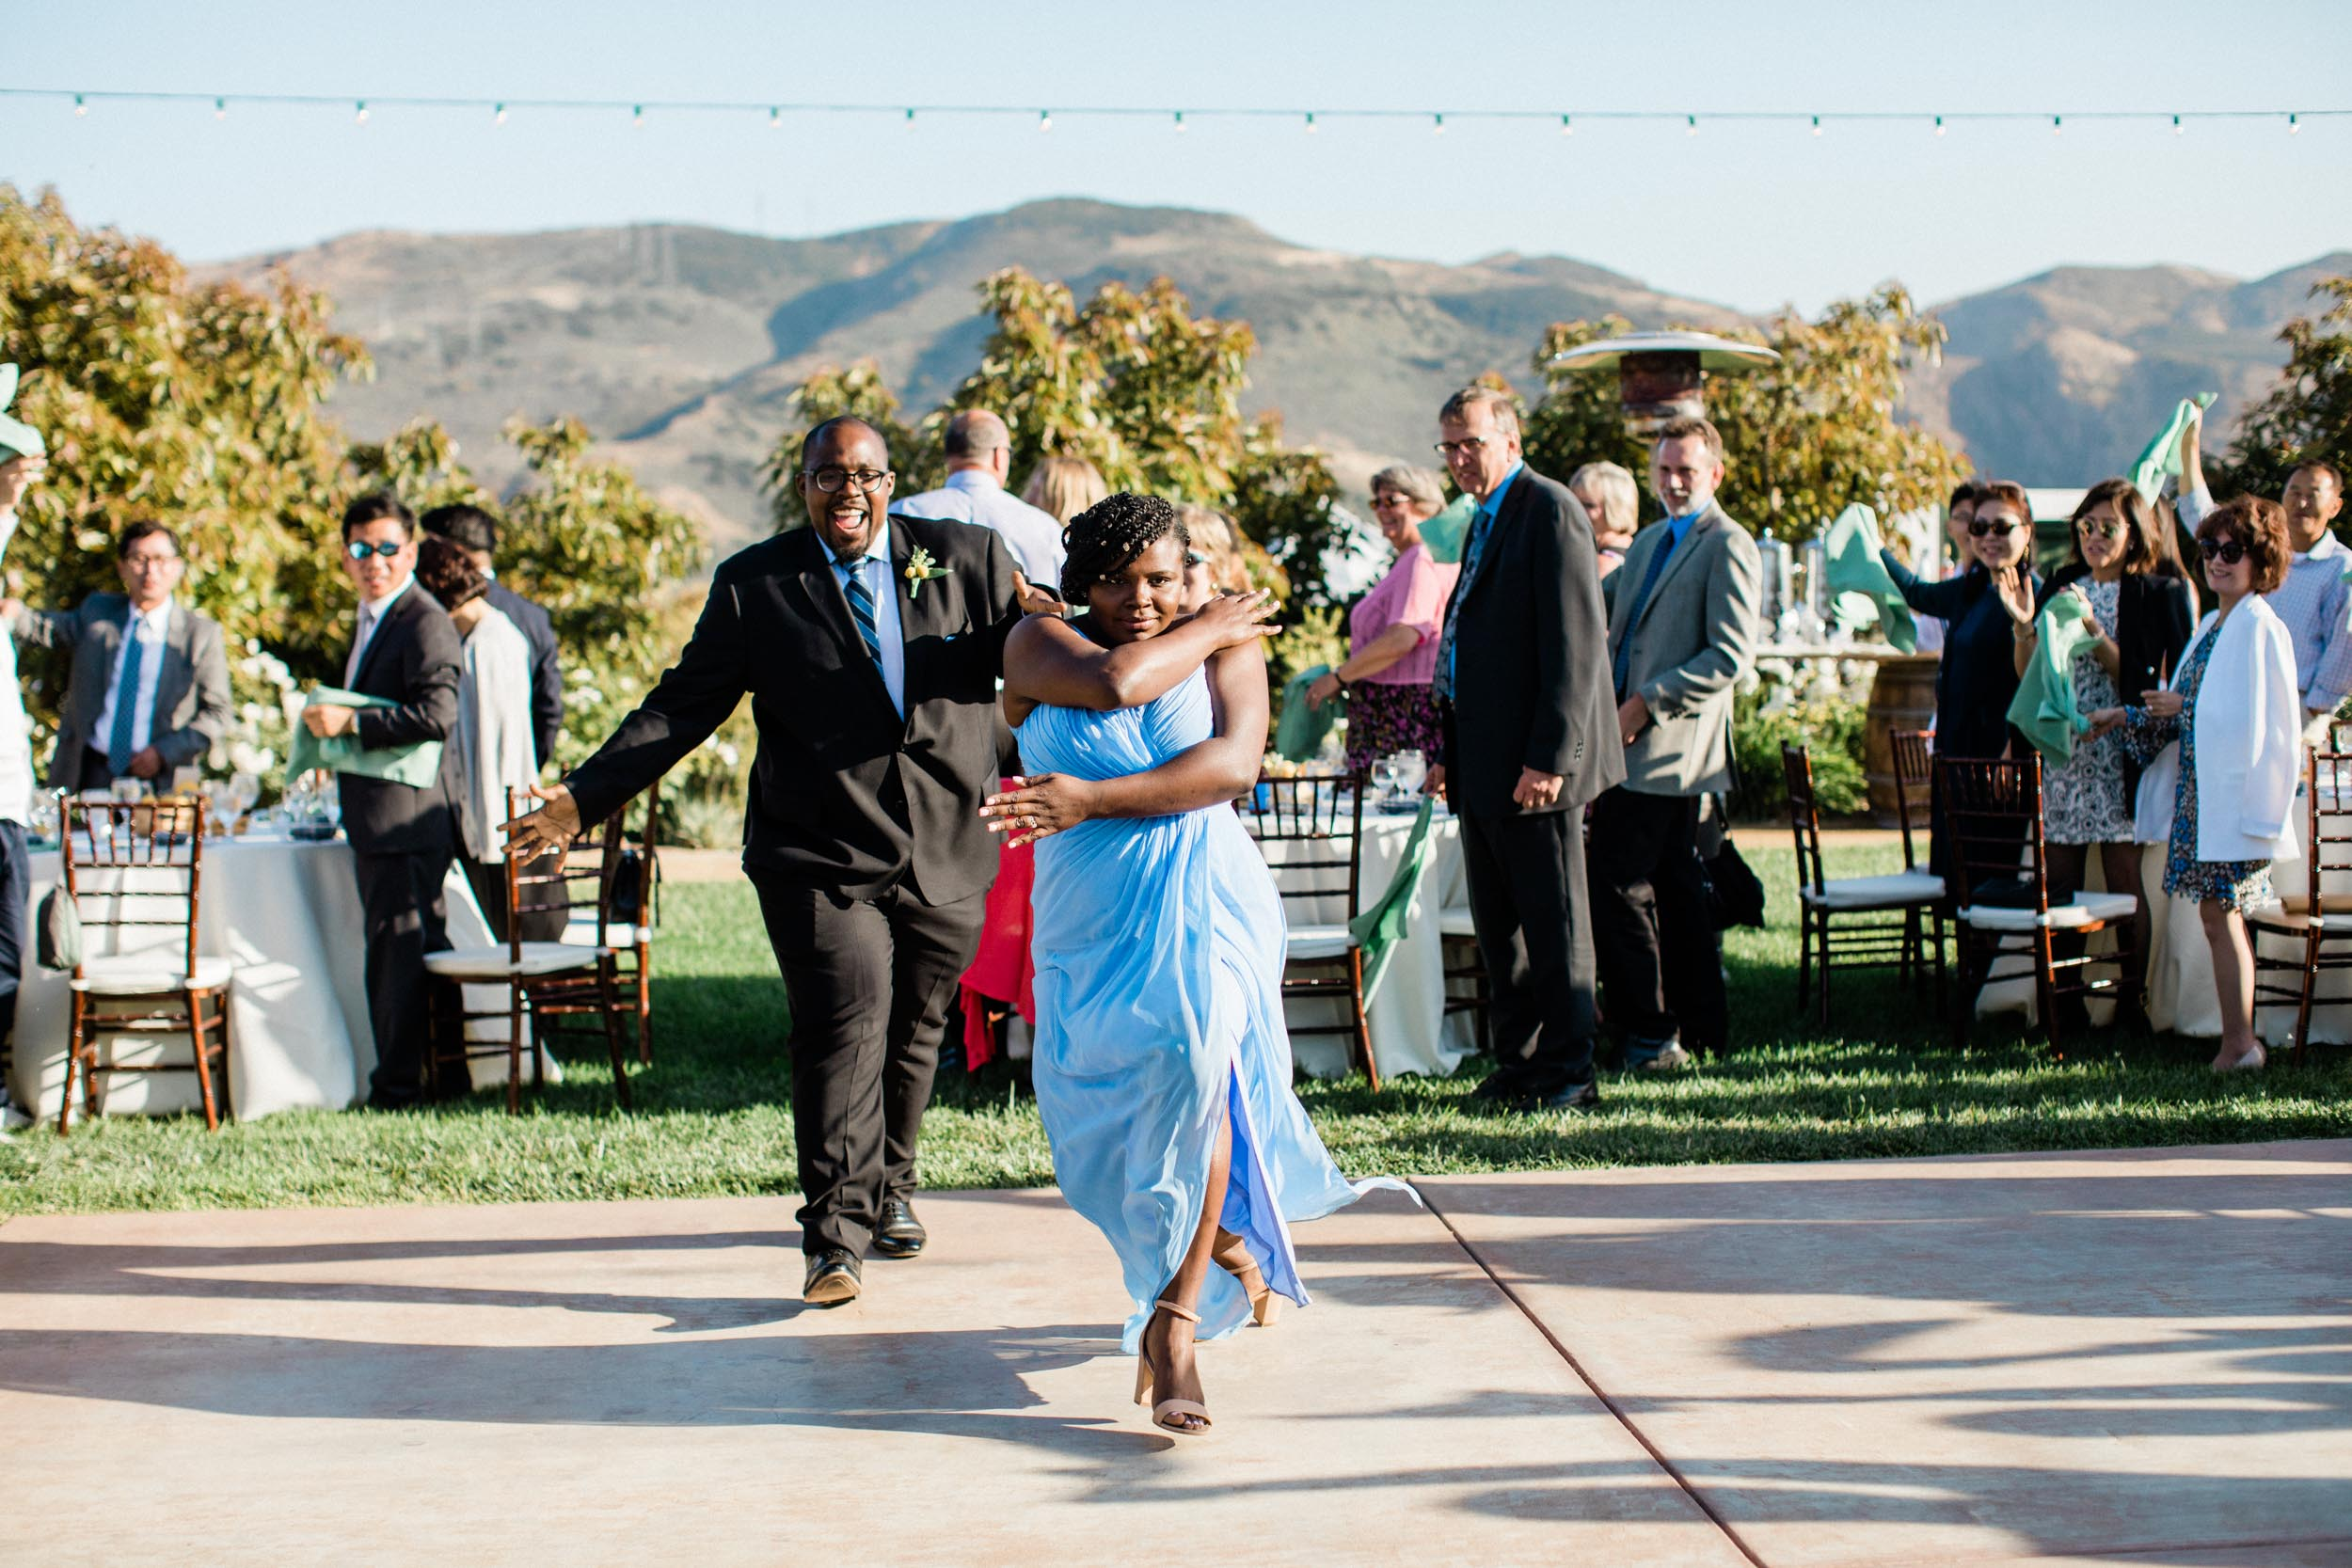 BKM-Photography-Gerry-Ranch-Southern-California-Wedding-0124.jpg